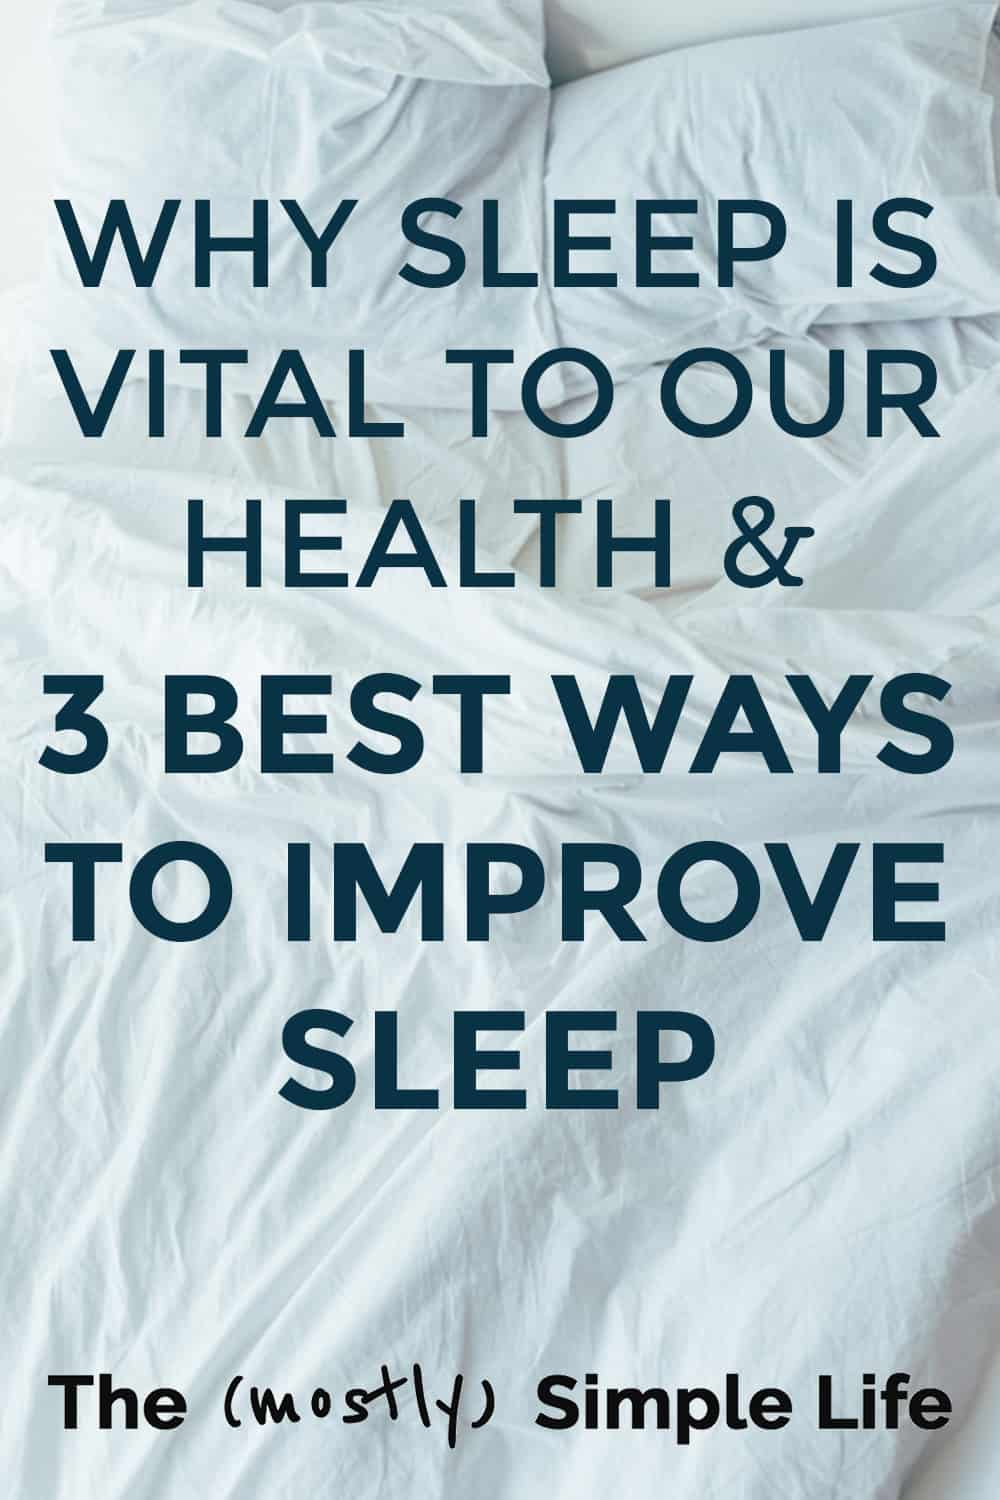 Why Sleep is Vital for Good Health and Fitness (And How to Sleep Better)